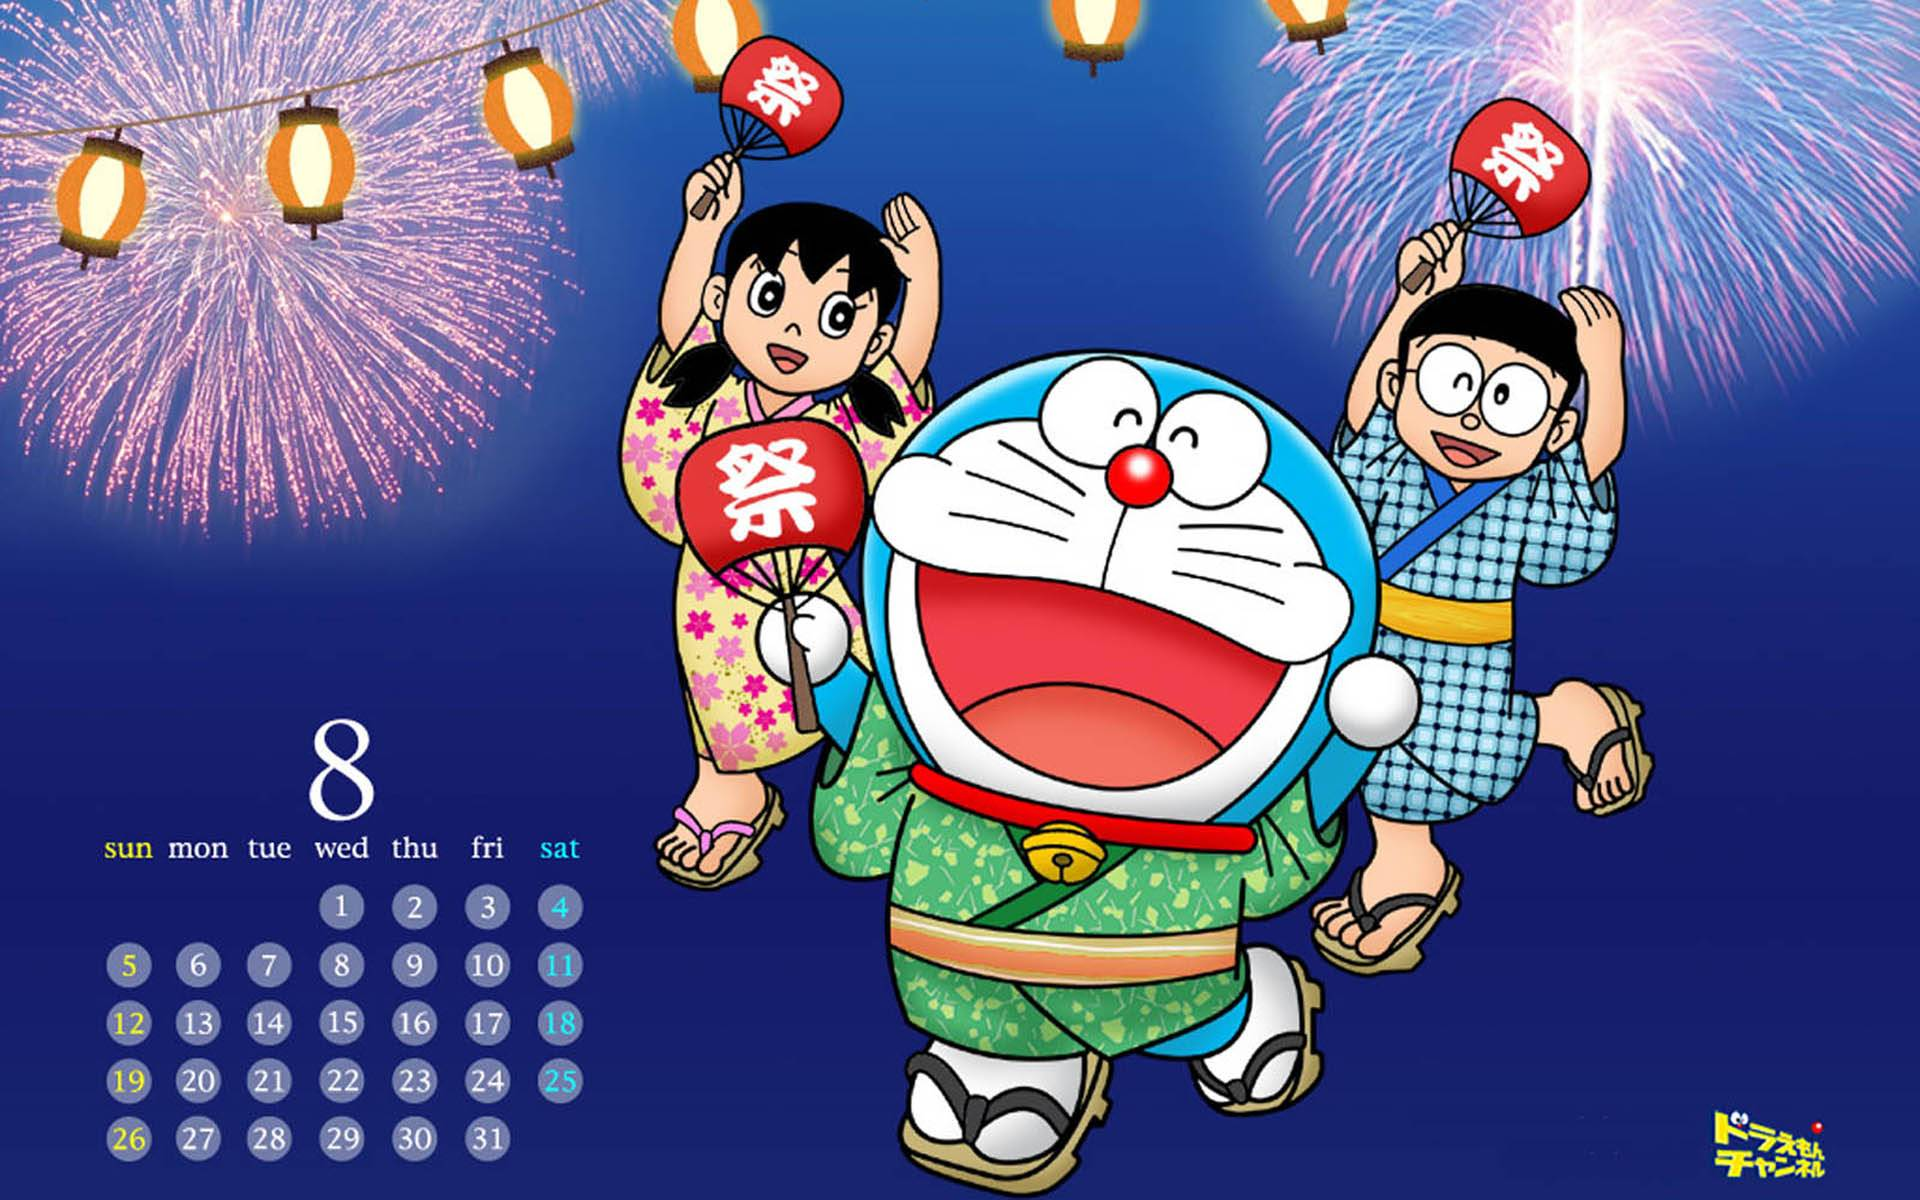 Doraemon 3D Wallpapers 2015 FREE On GreePX